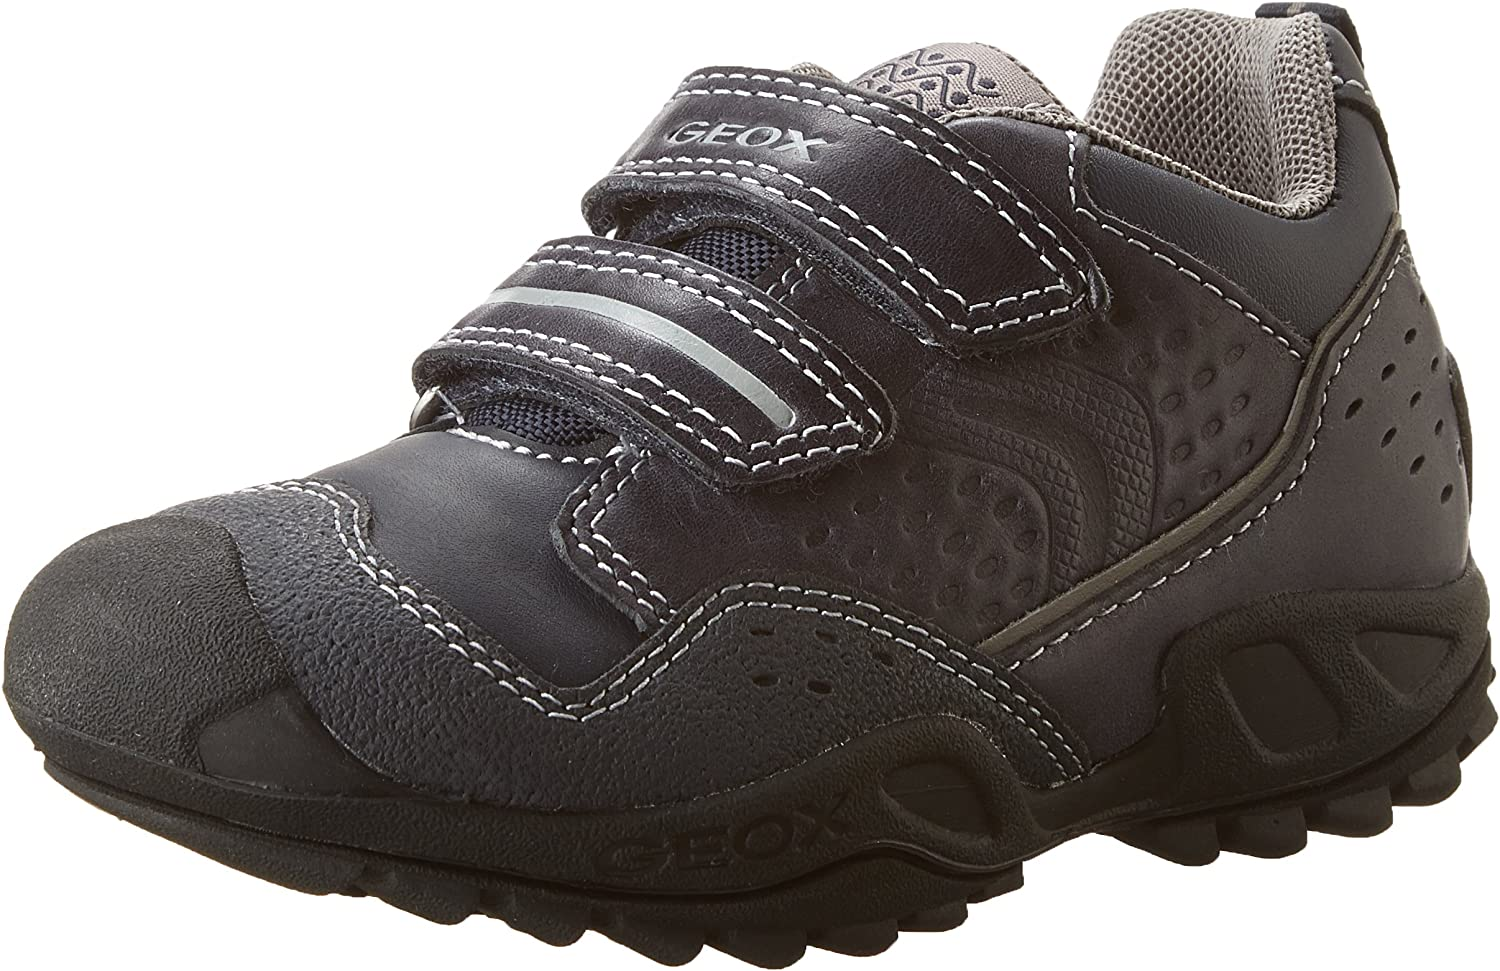 Geox Baby Boy's NEW SAVAGE BOY 1 Sneakers